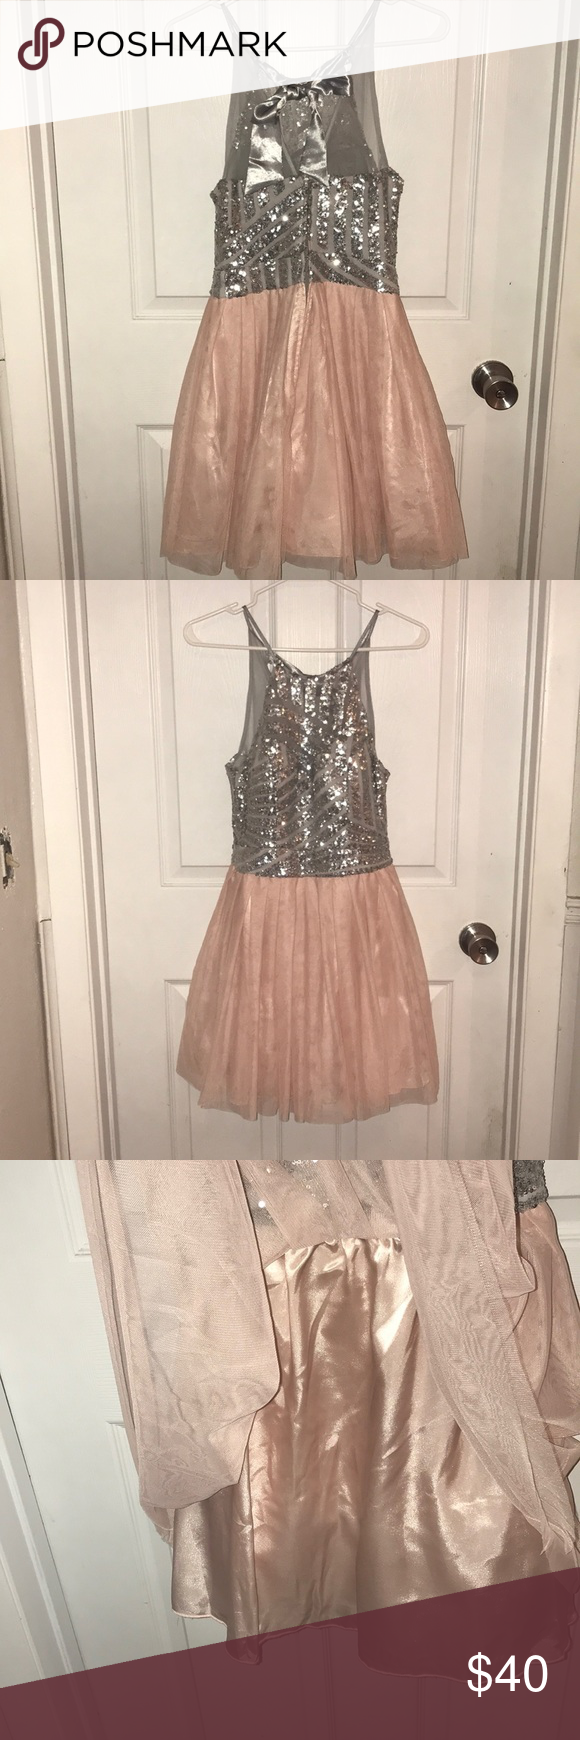 B darlin cocktailprom dress worn once my posh picks